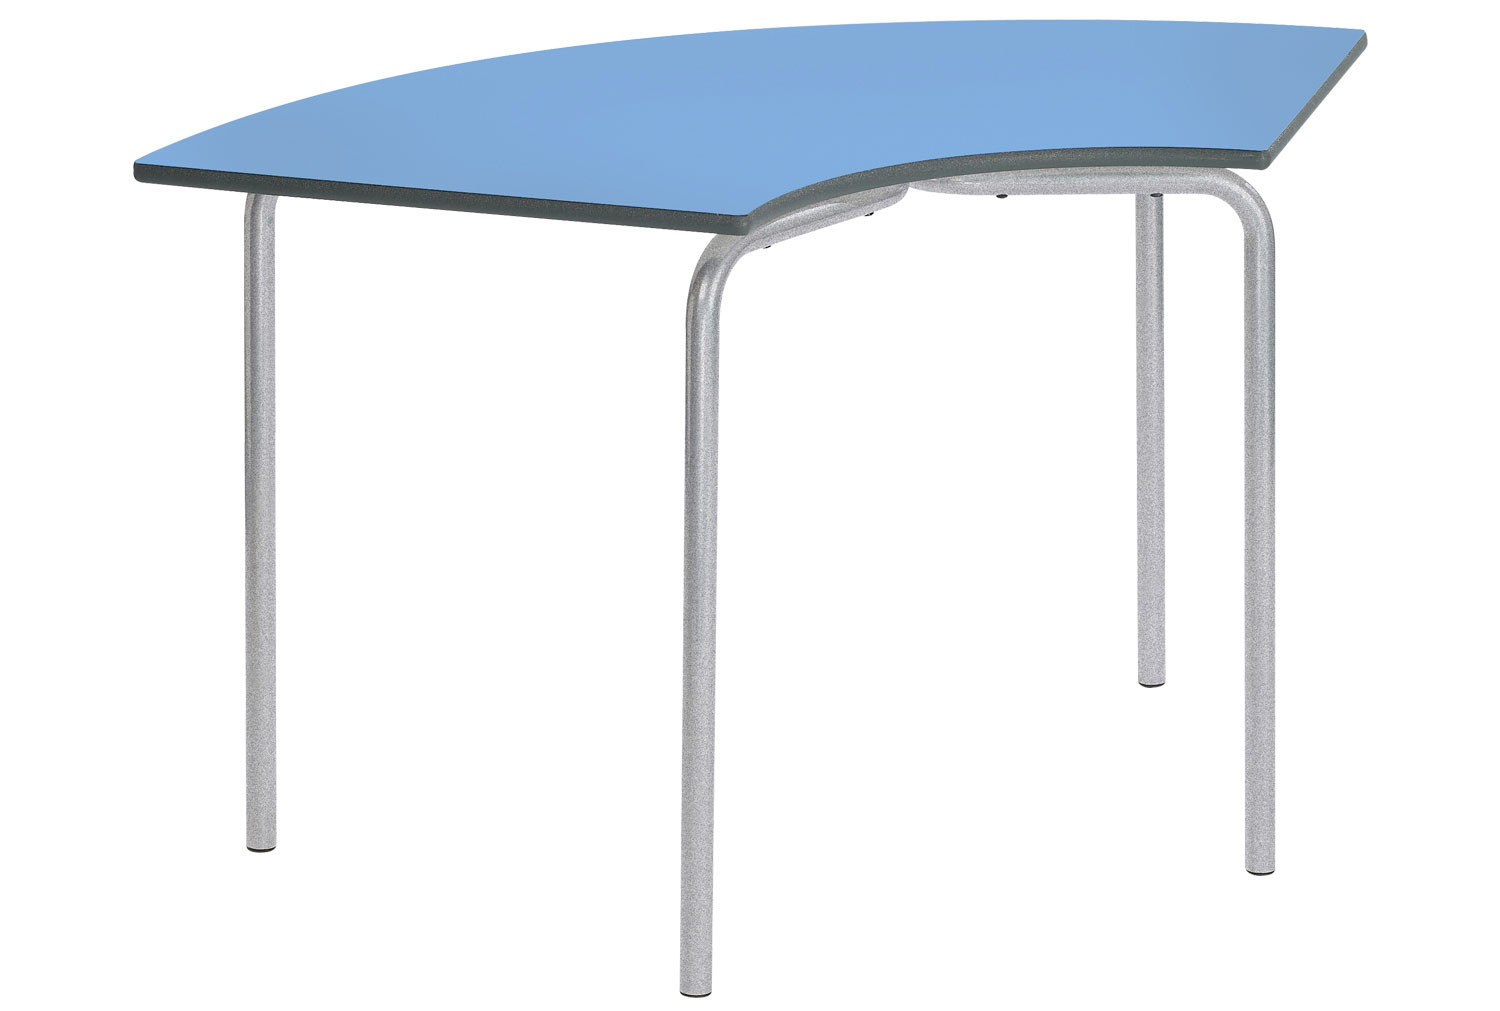 Equation Arc Shaped Classroom Tables 8-11 Years